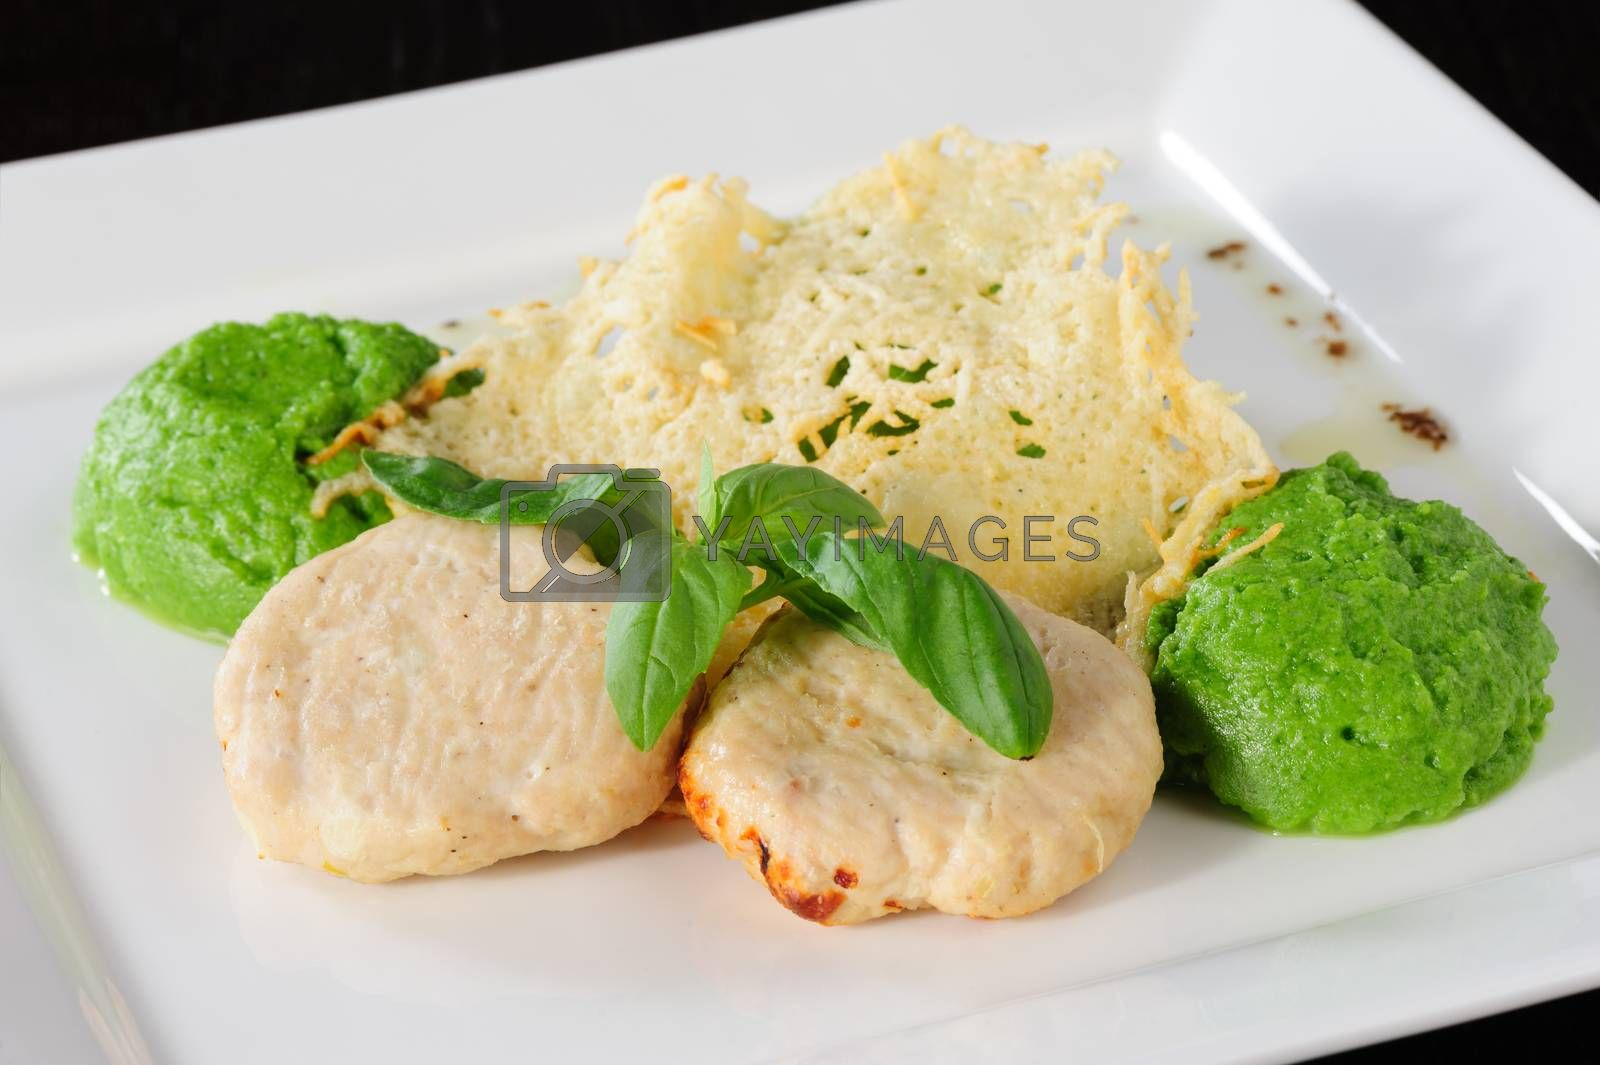 Steamed meatballs with green potato-broccoli puree and basil leaves